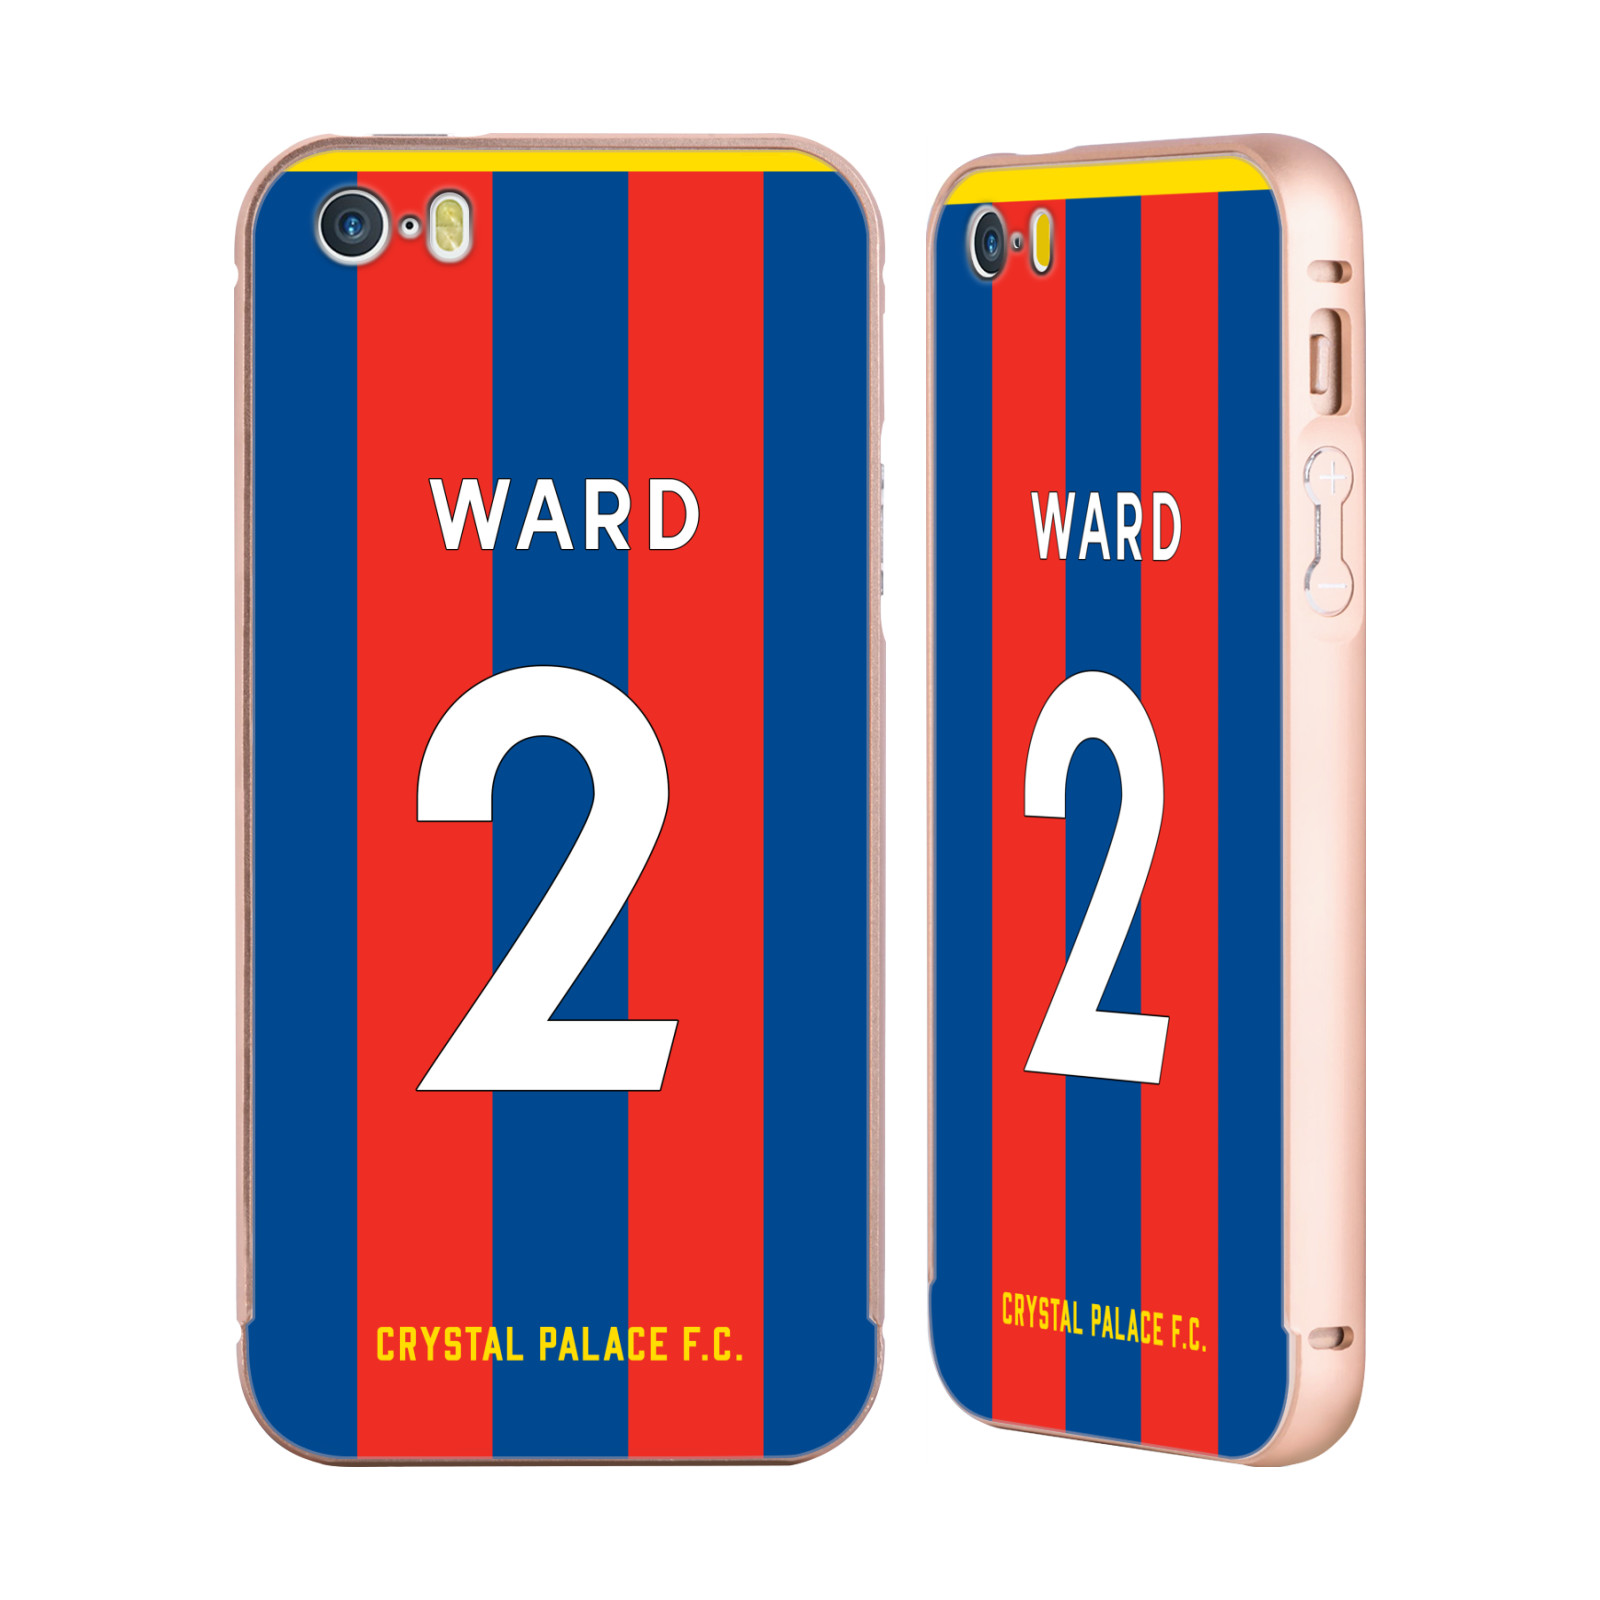 CRYSTAL-PALACE-FC-2017-18-HOME-KIT-2-GOLD-SLIDER-CASE-FOR-APPLE-iPHONE-PHONES